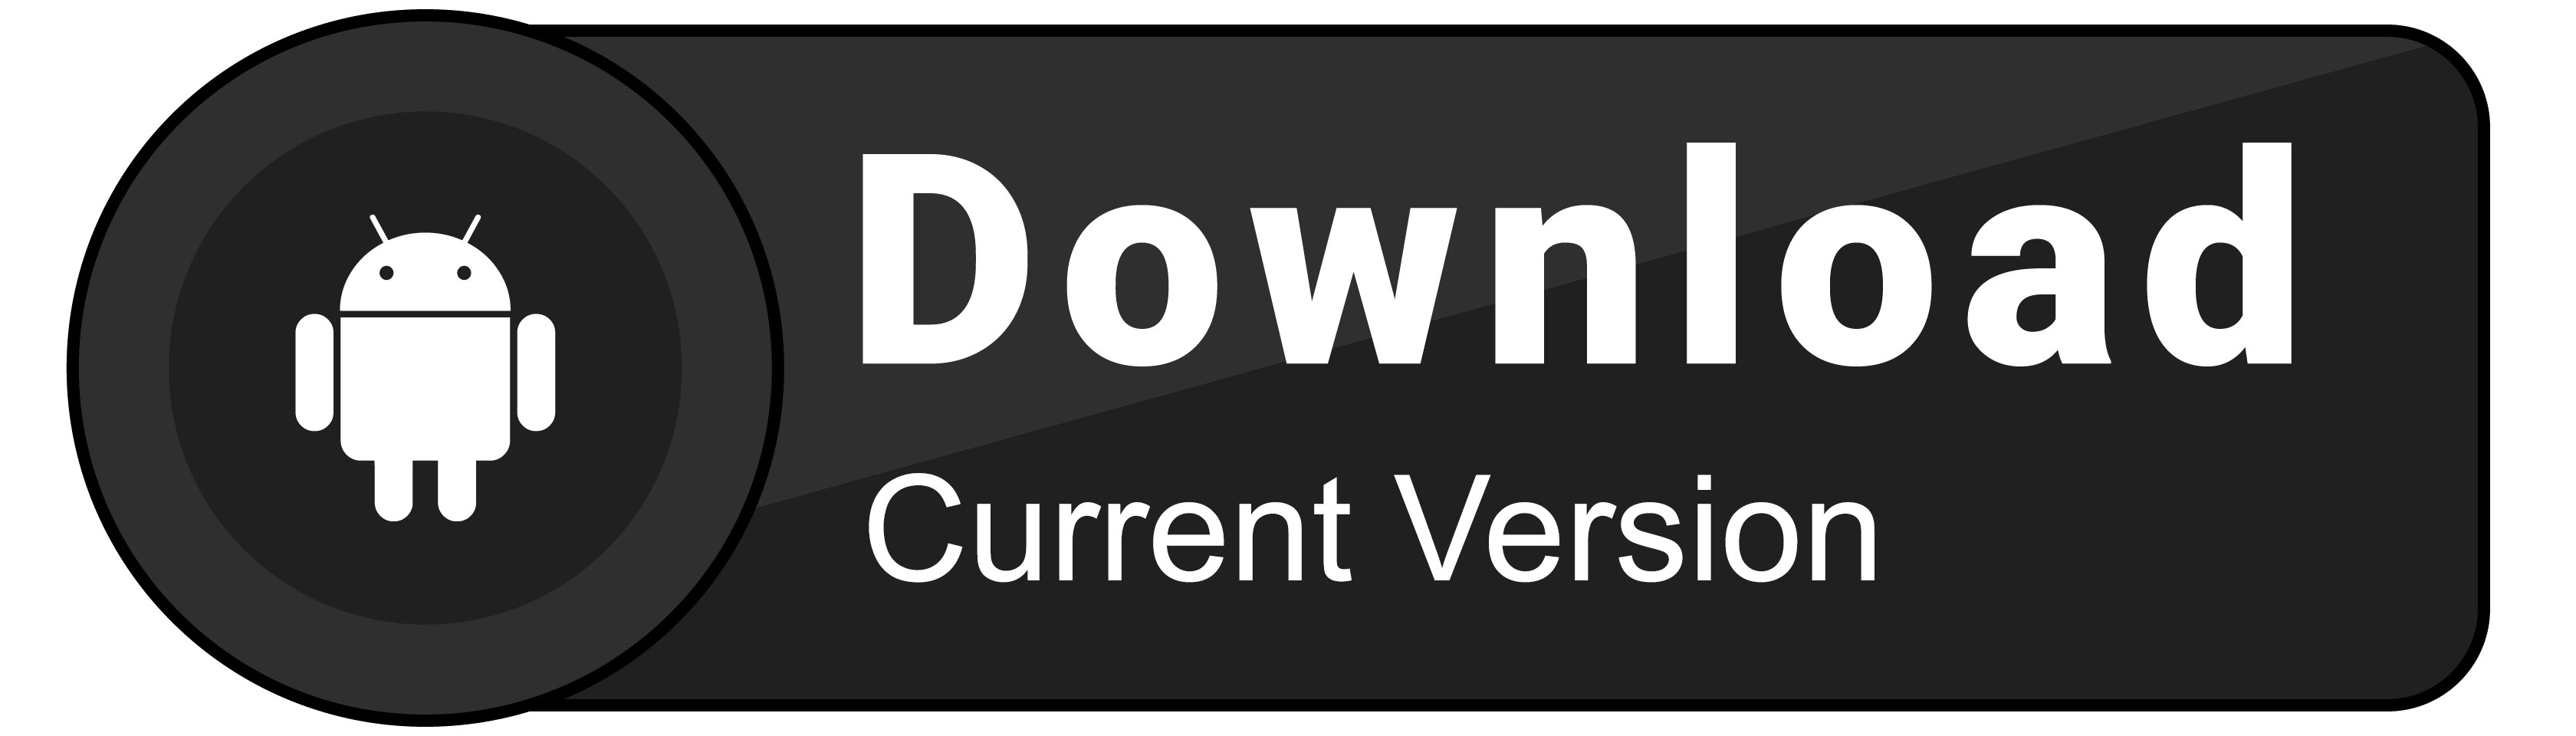 Download Current Version